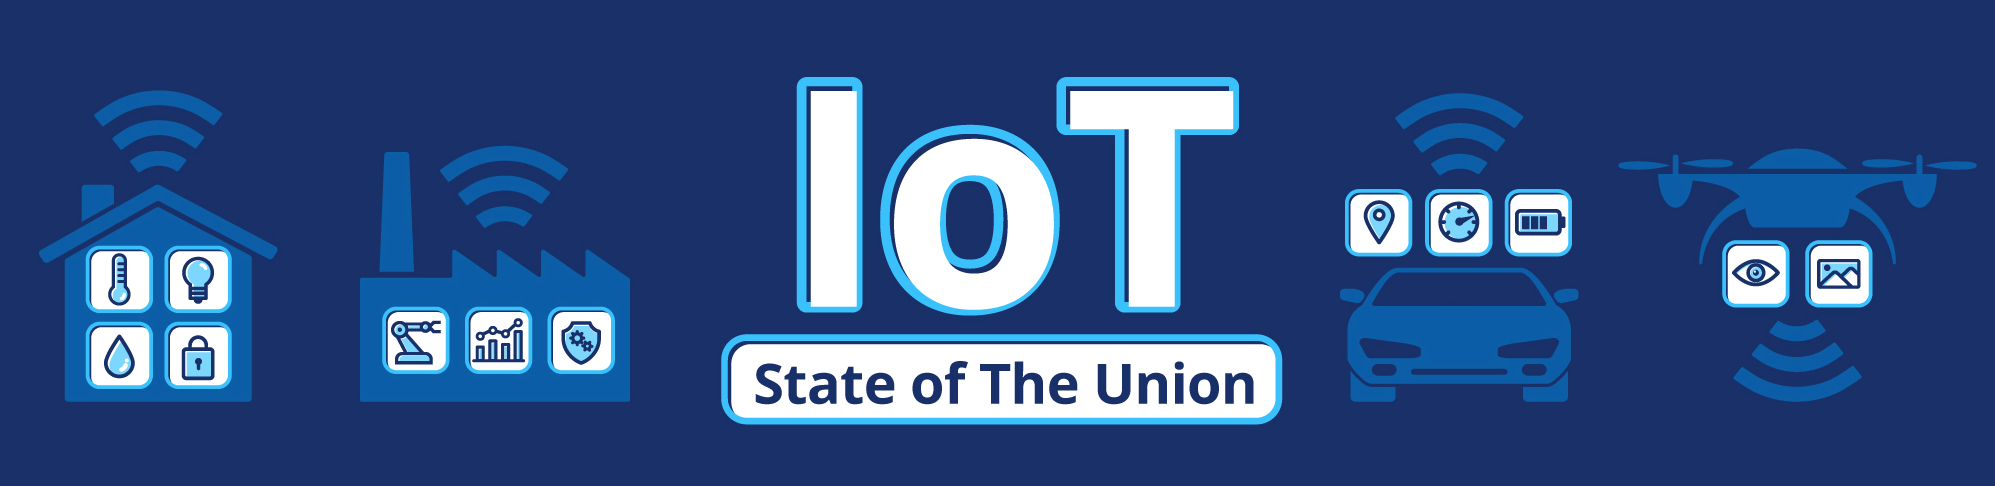 Wing's IoT Startup State Of The Union: An Update